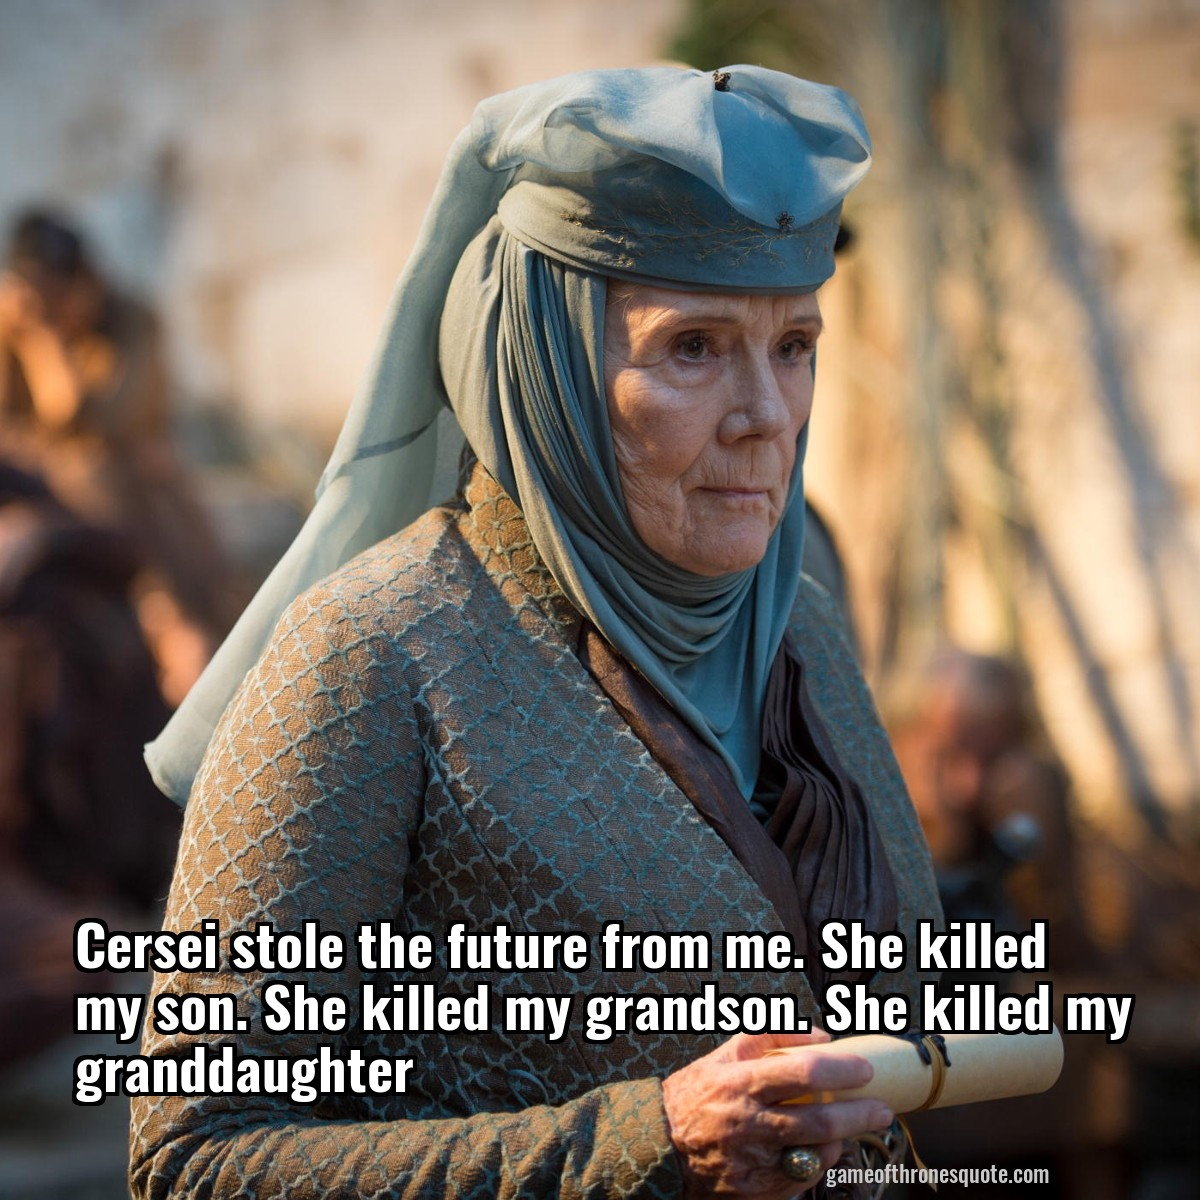 Cersei stole the future from me. She killed my son. She killed my grandson. She killed my granddaughter